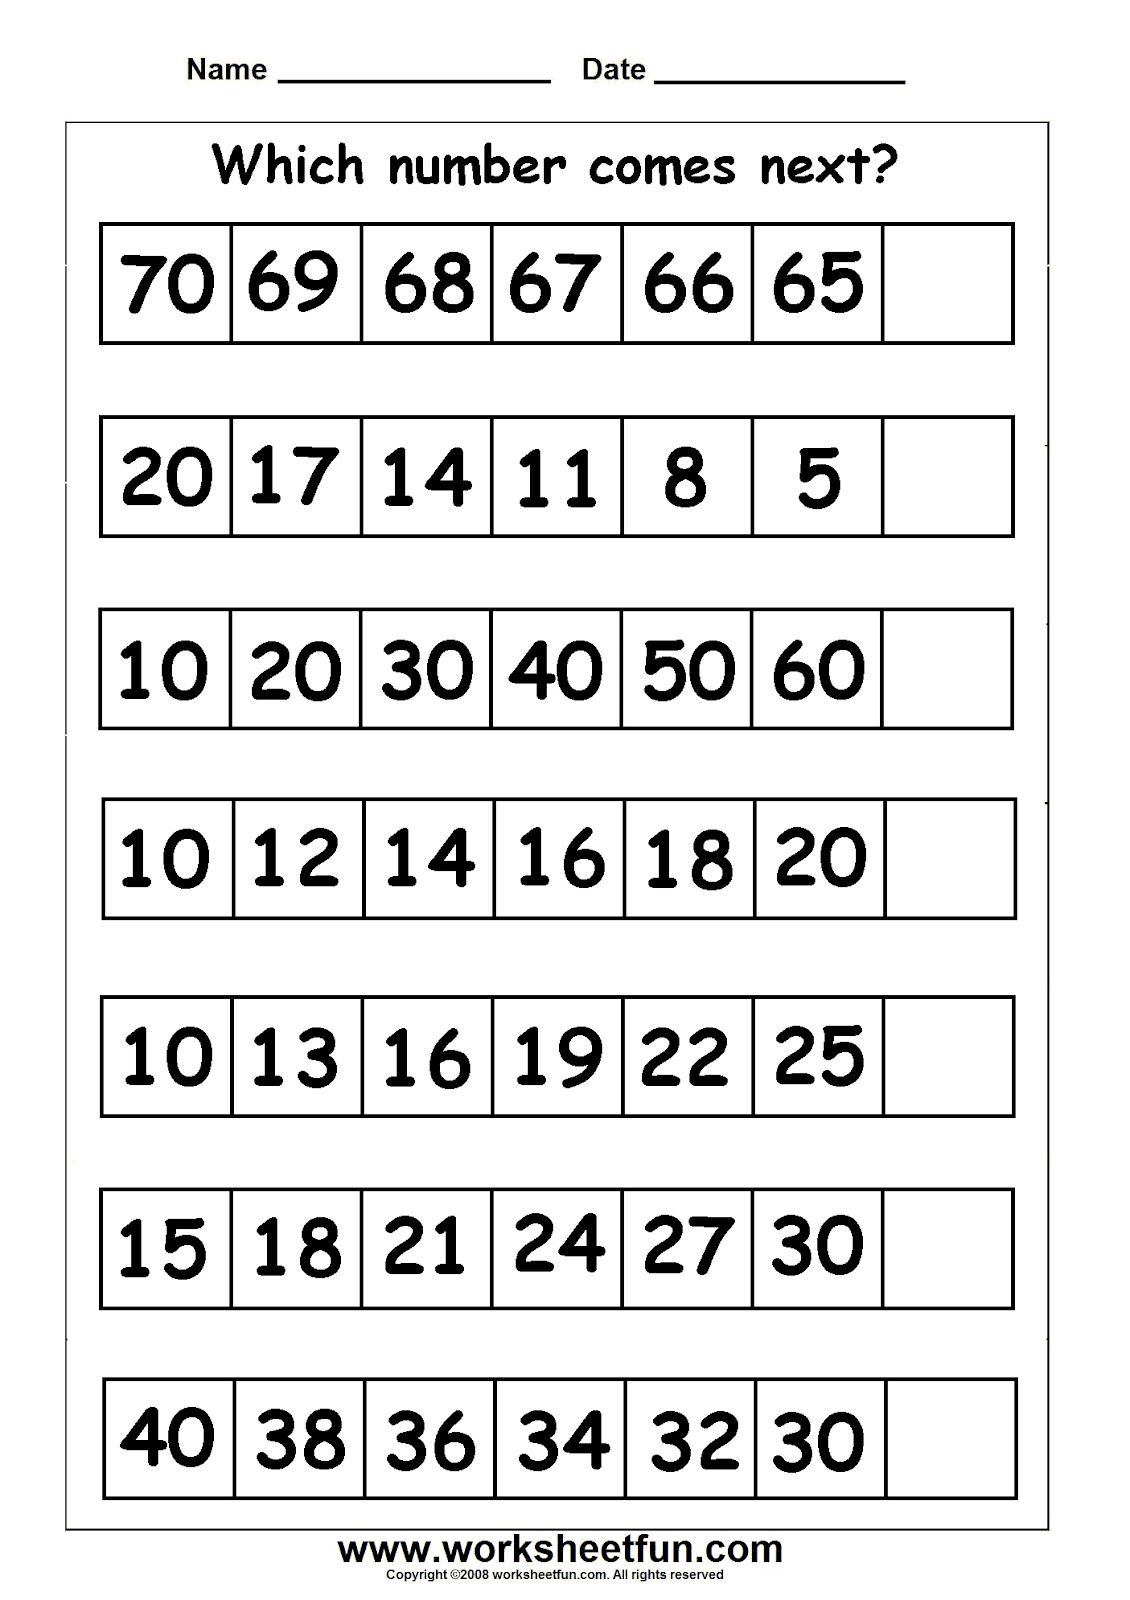 hight resolution of Worksheetfun - FREE PRINTABLE WORKSHEETS   First grade math worksheets